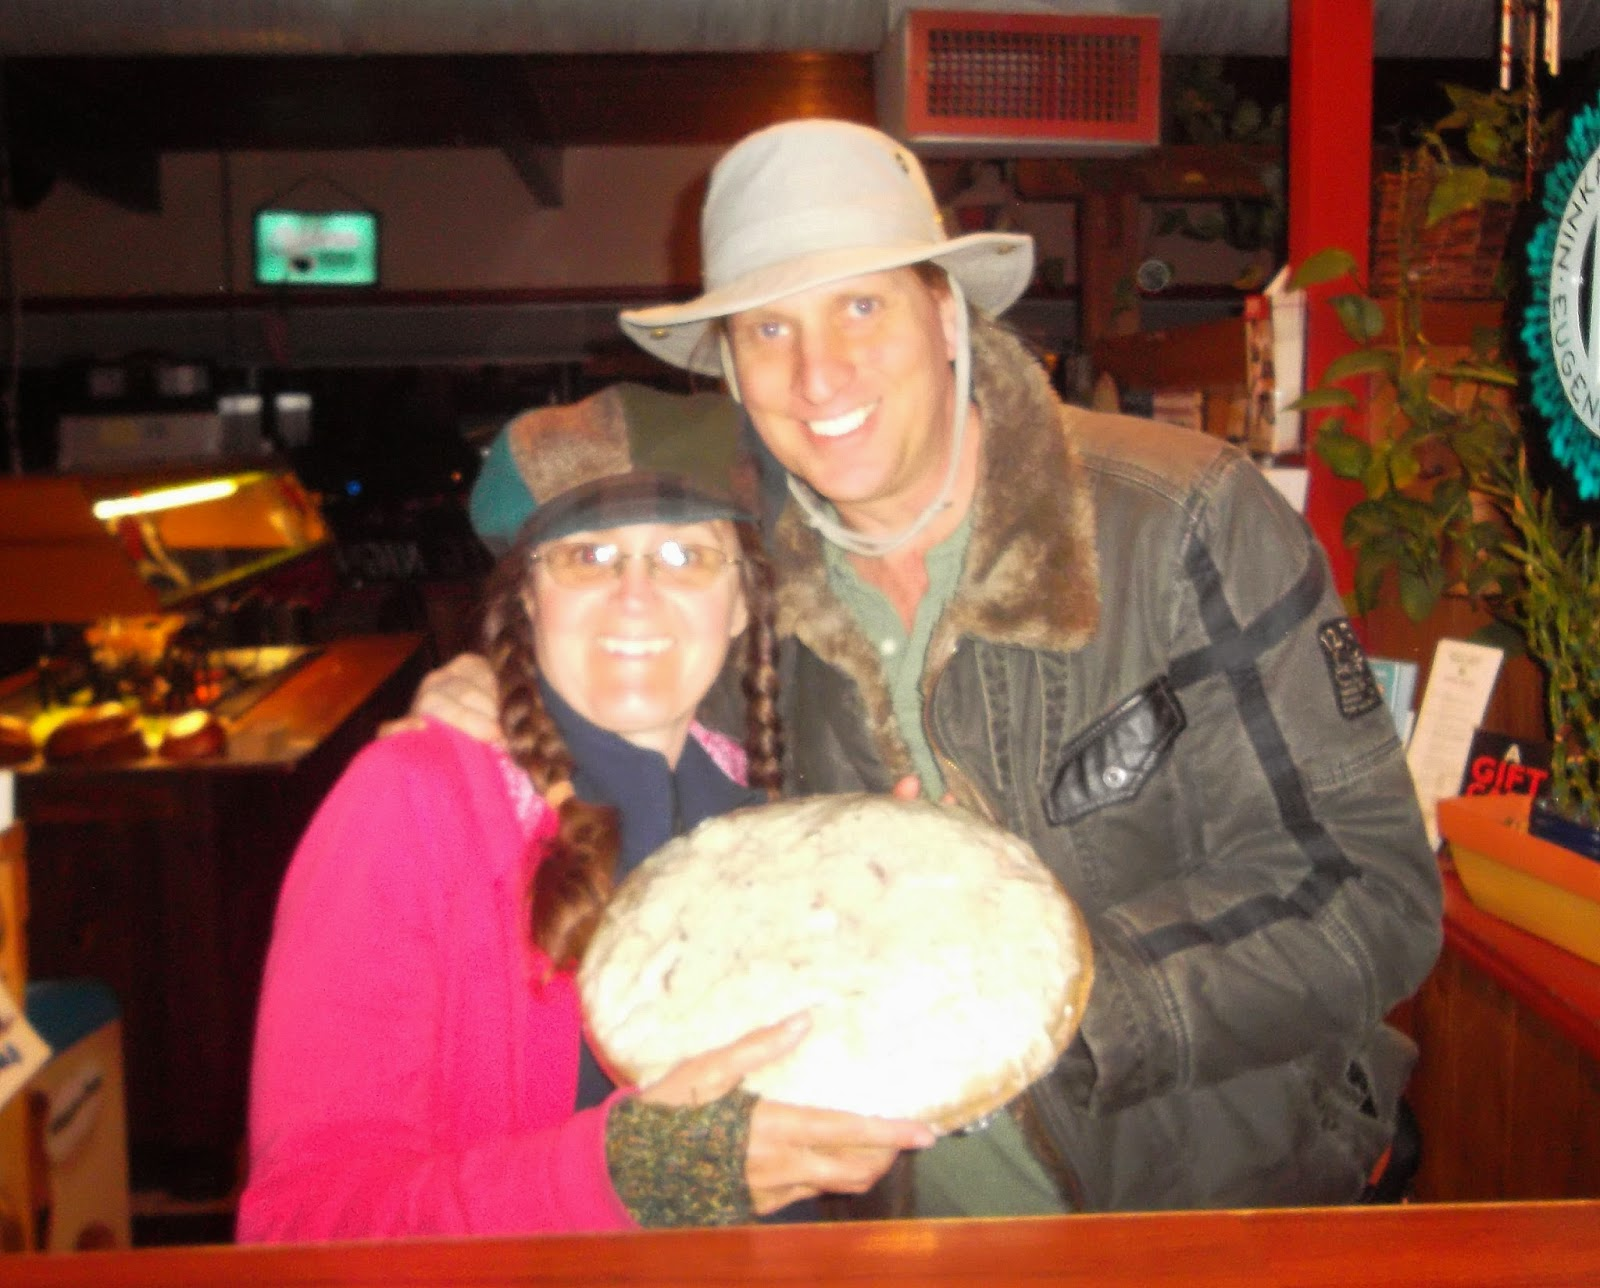 Cynthia M. Parkhill and Jonathan Donihue holding plastic-wrapped, uncooked pizza at restaurant counter.